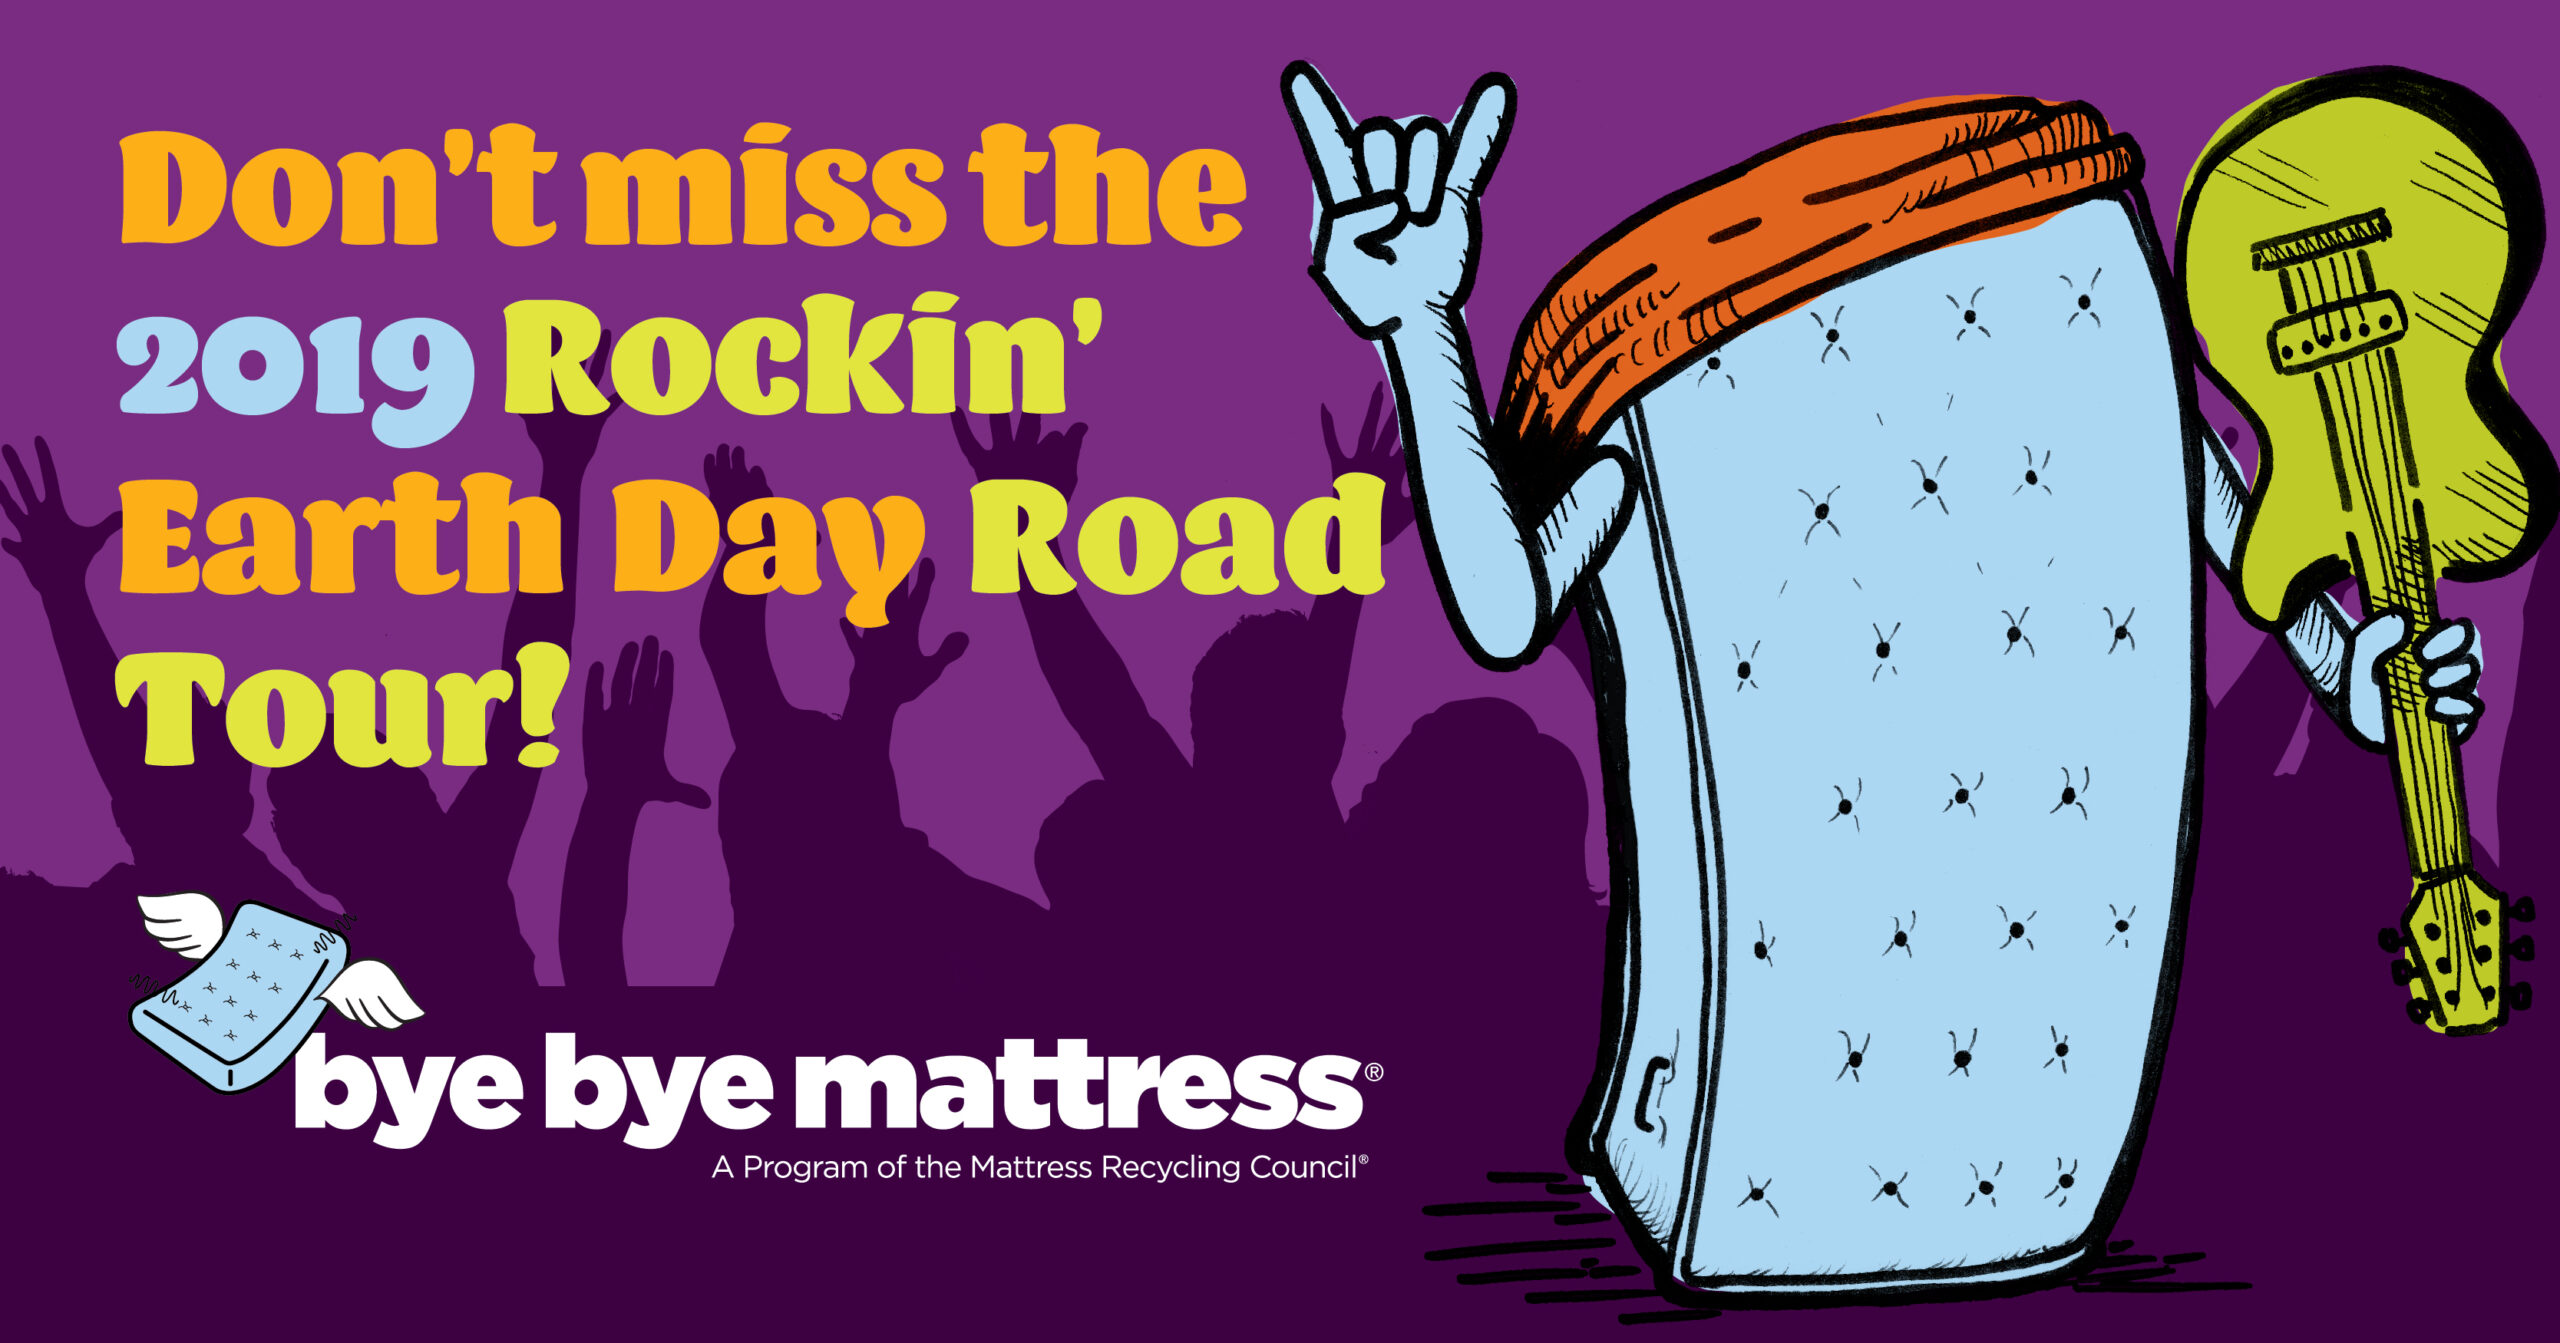 Social creative with a mattress dressed like a rockstar to promote Earth Day events road tour. The text reads 'Don't miss the 2019 Rockin' Earth Day Road Tour.'